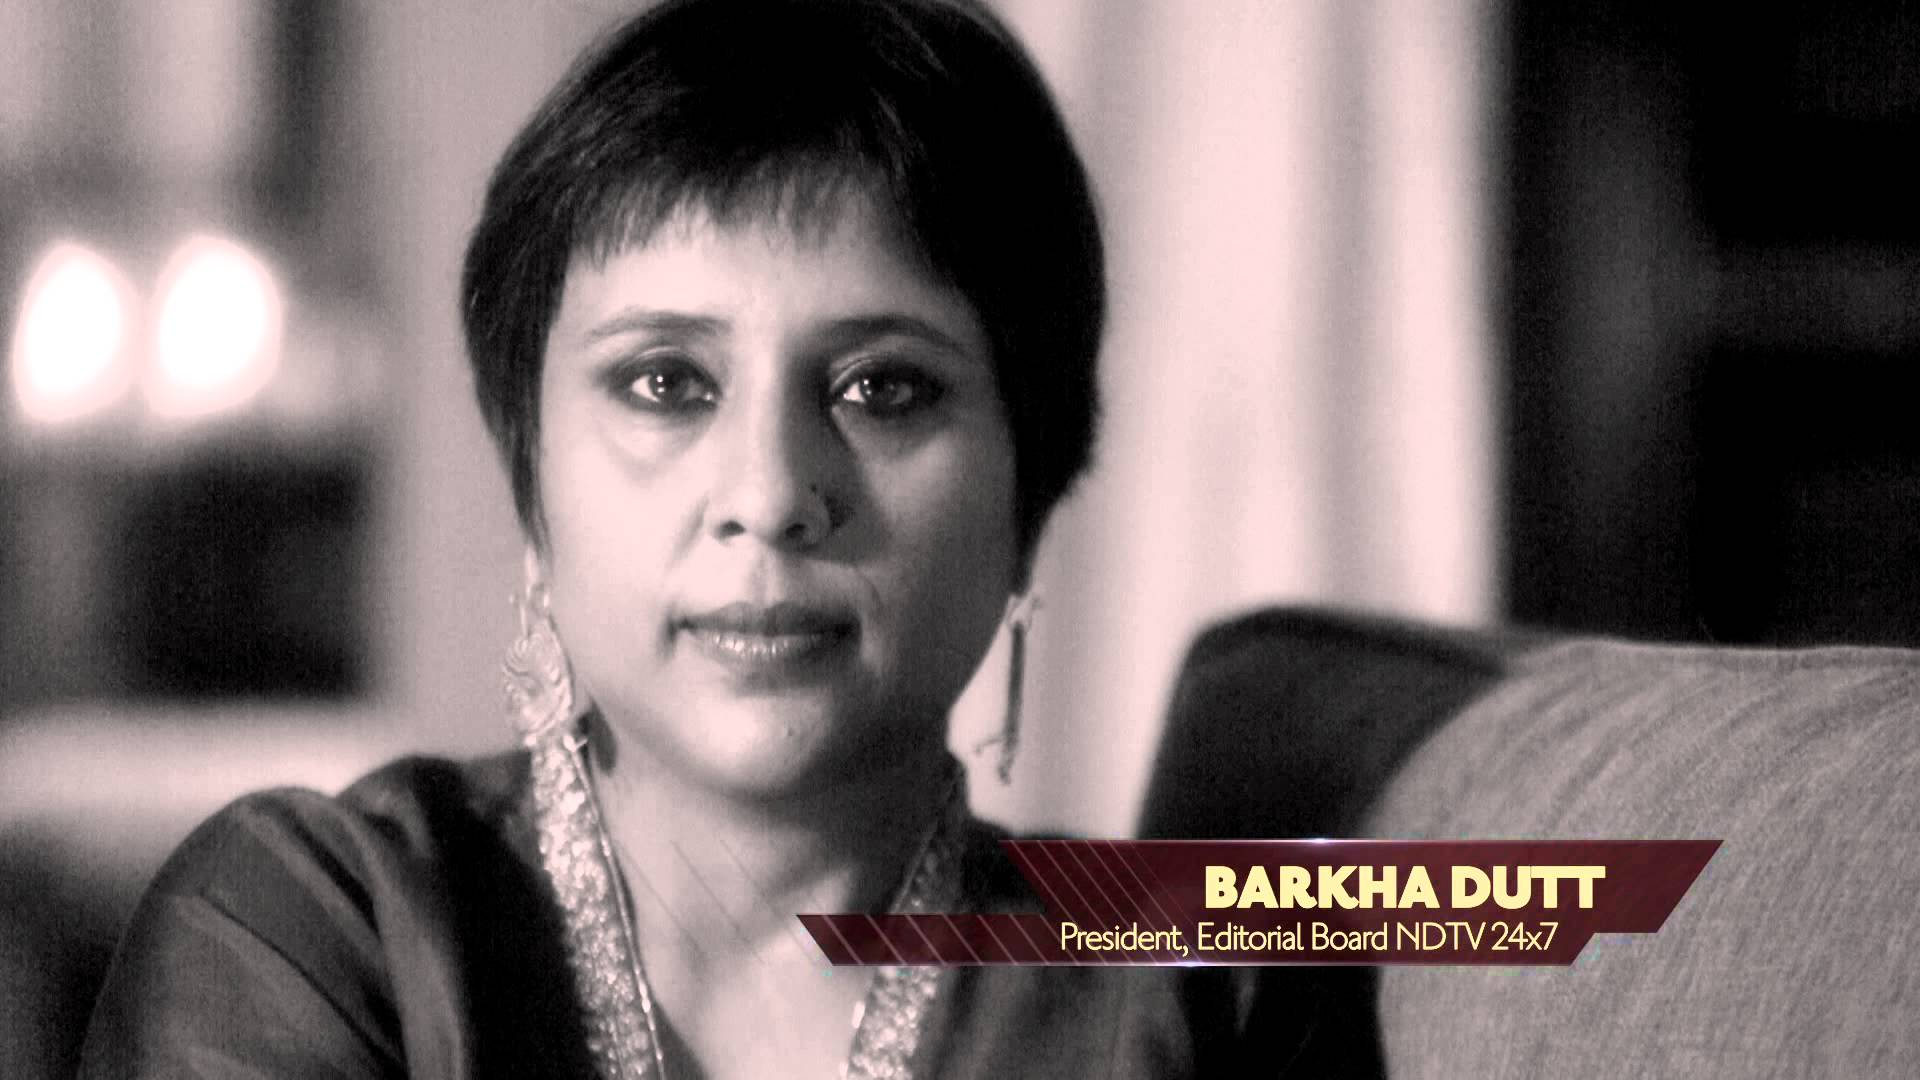 "barkha dutt Senior journalist barkha dutt in a series of tweets on thursday alleged that a section of the ruling party is intimidating her""the story is about the government interfering with my right to work."